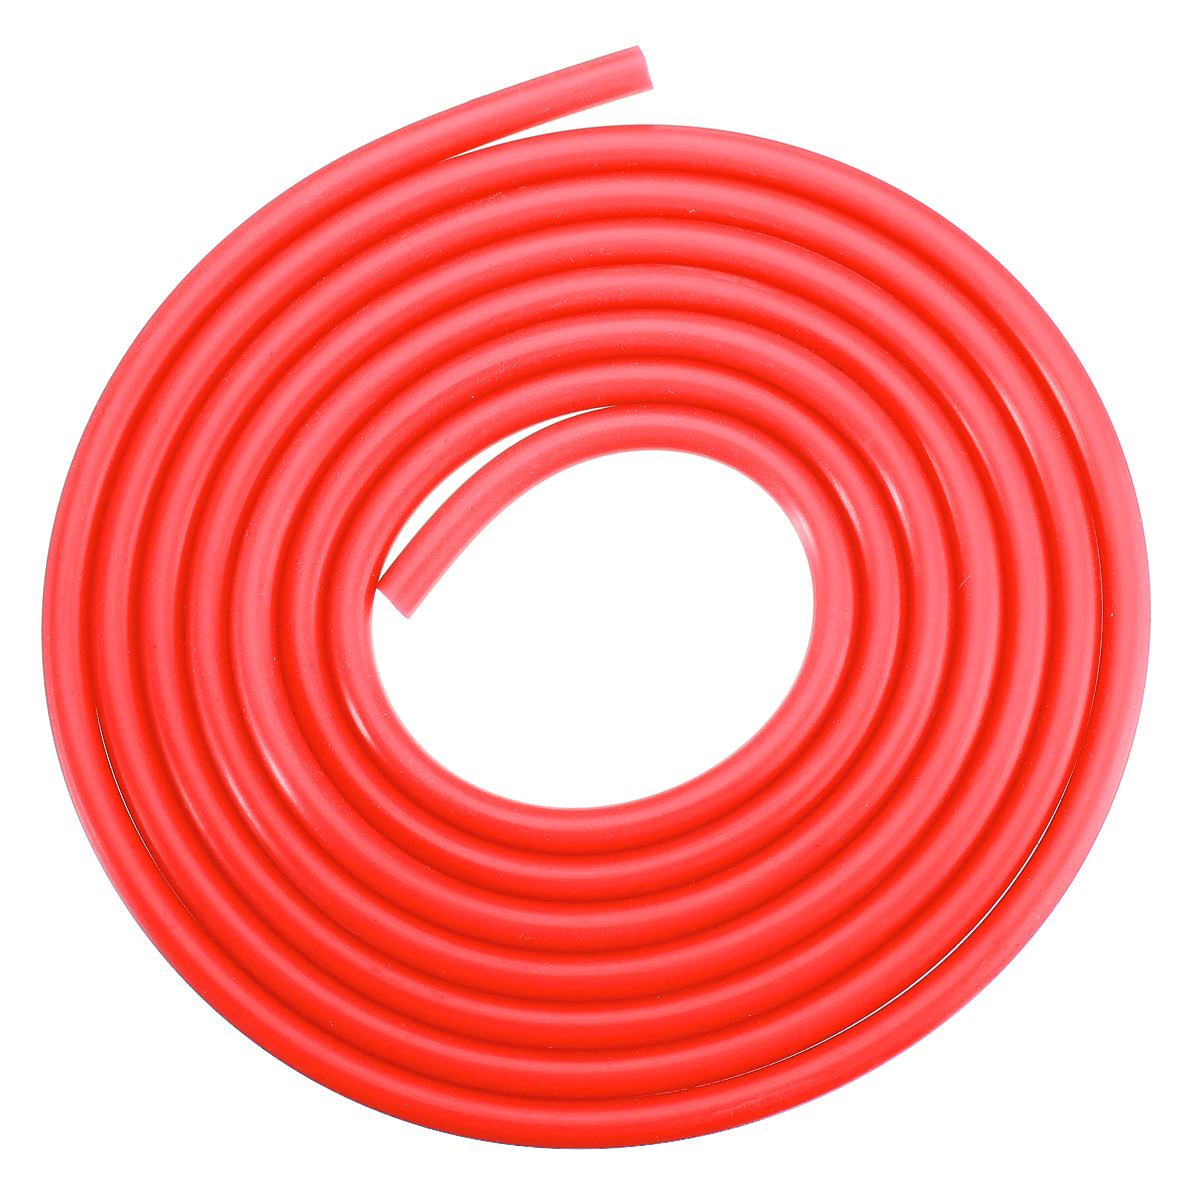 3 Meters Orange Silicone Hose For High Temp Vacuum Engine Bay Dress Up 8Mm P2 for Volkswagen Super Beetle